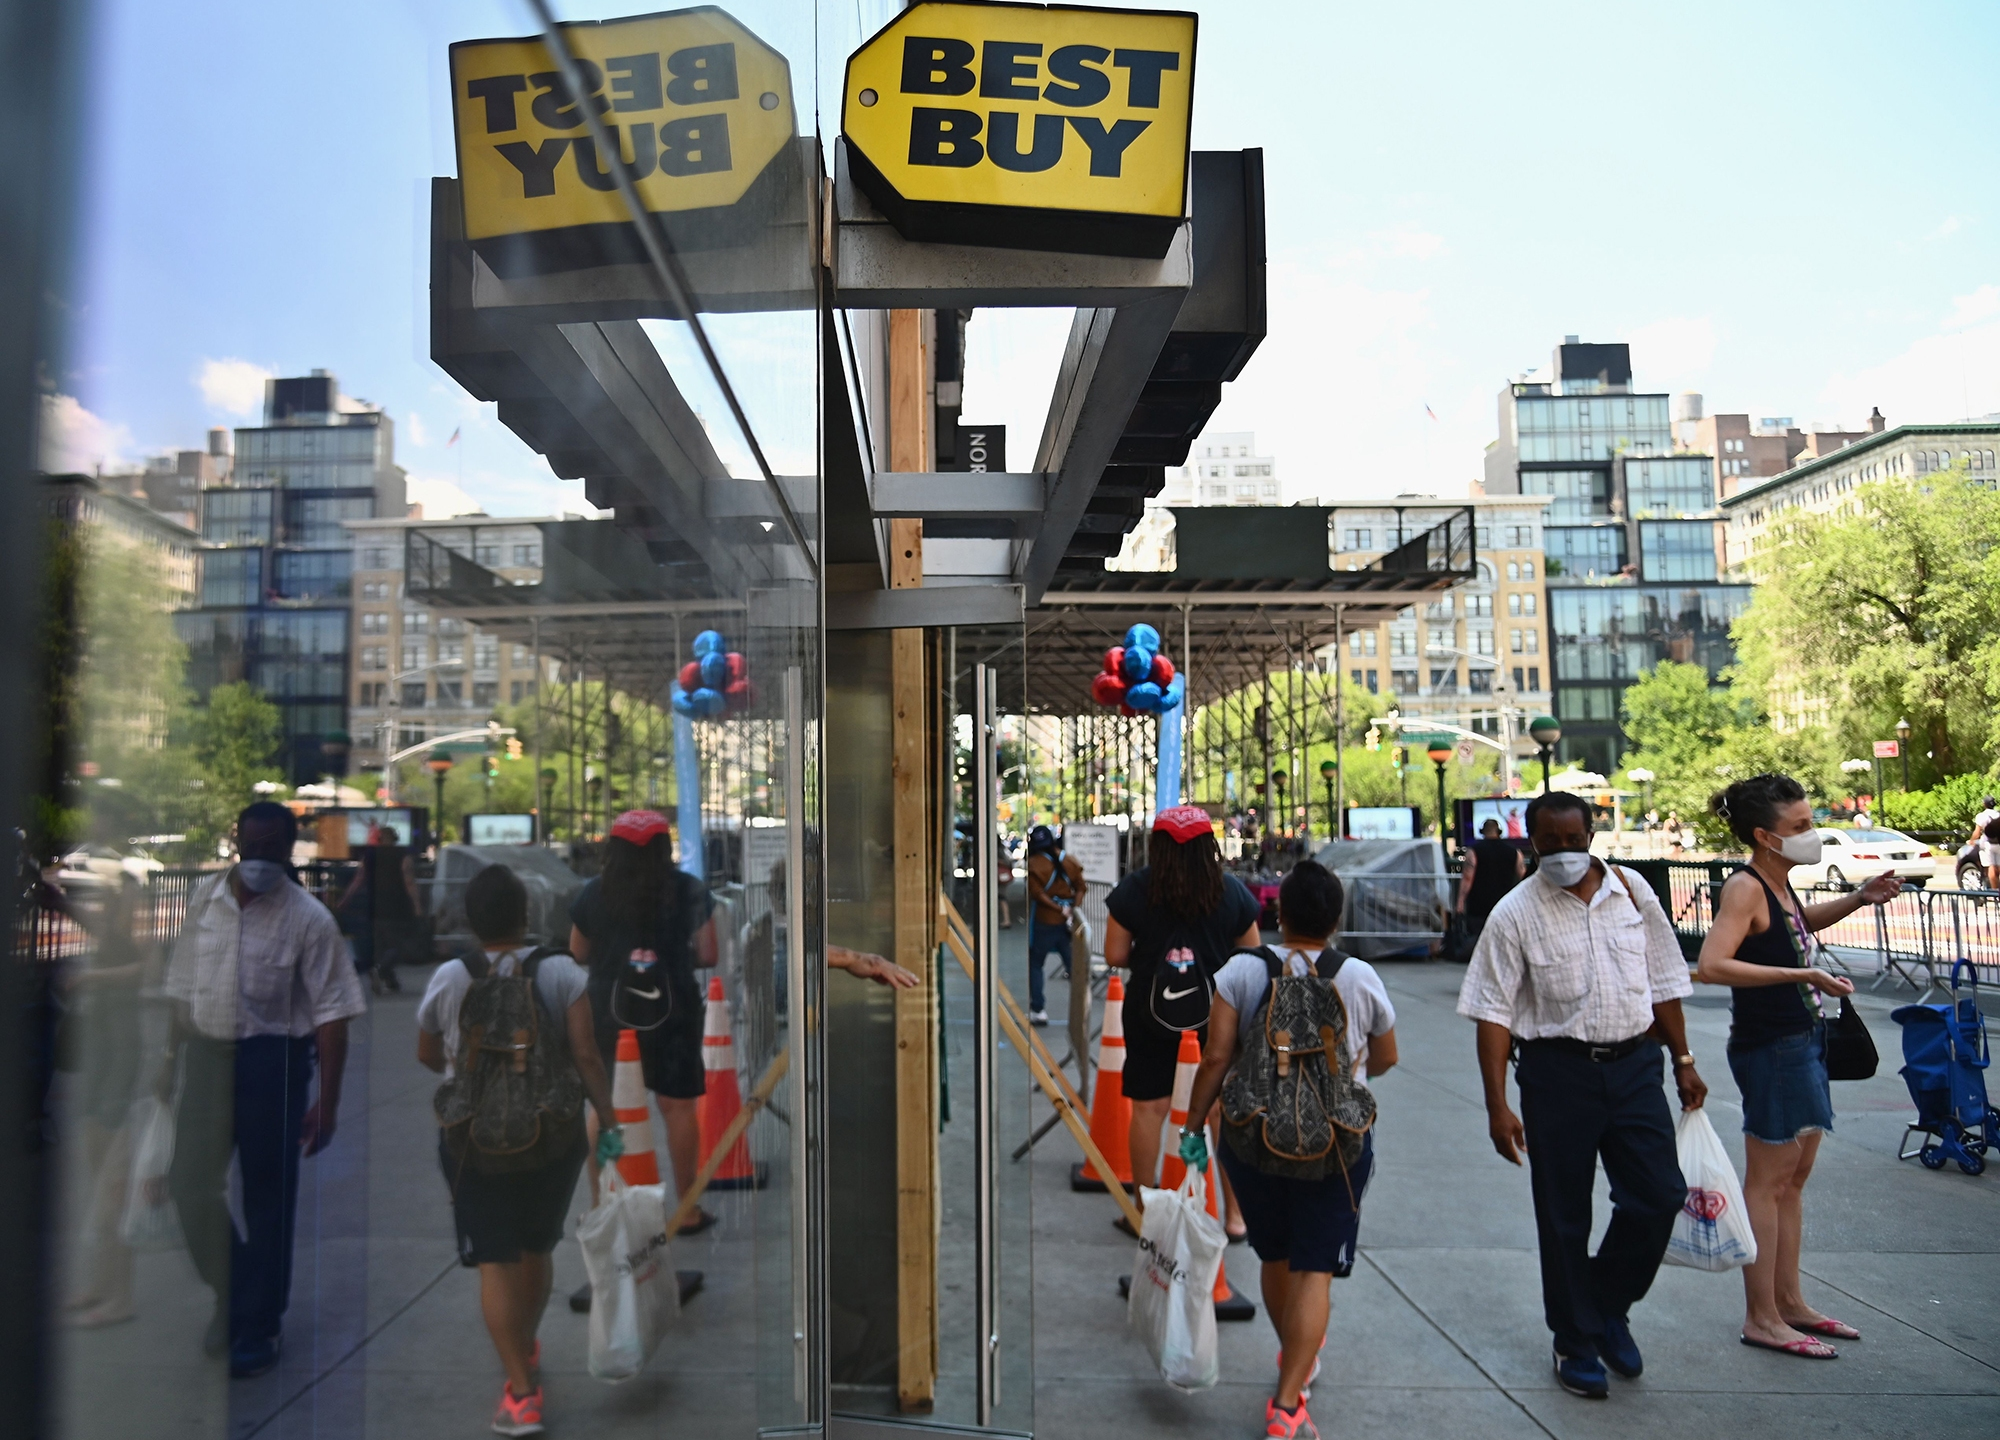 People wearing facemasks walk past a Best Buy store near Union Square on June 25, 2020 in New York City. (ANGELA WEISS/AFP via Getty Images)